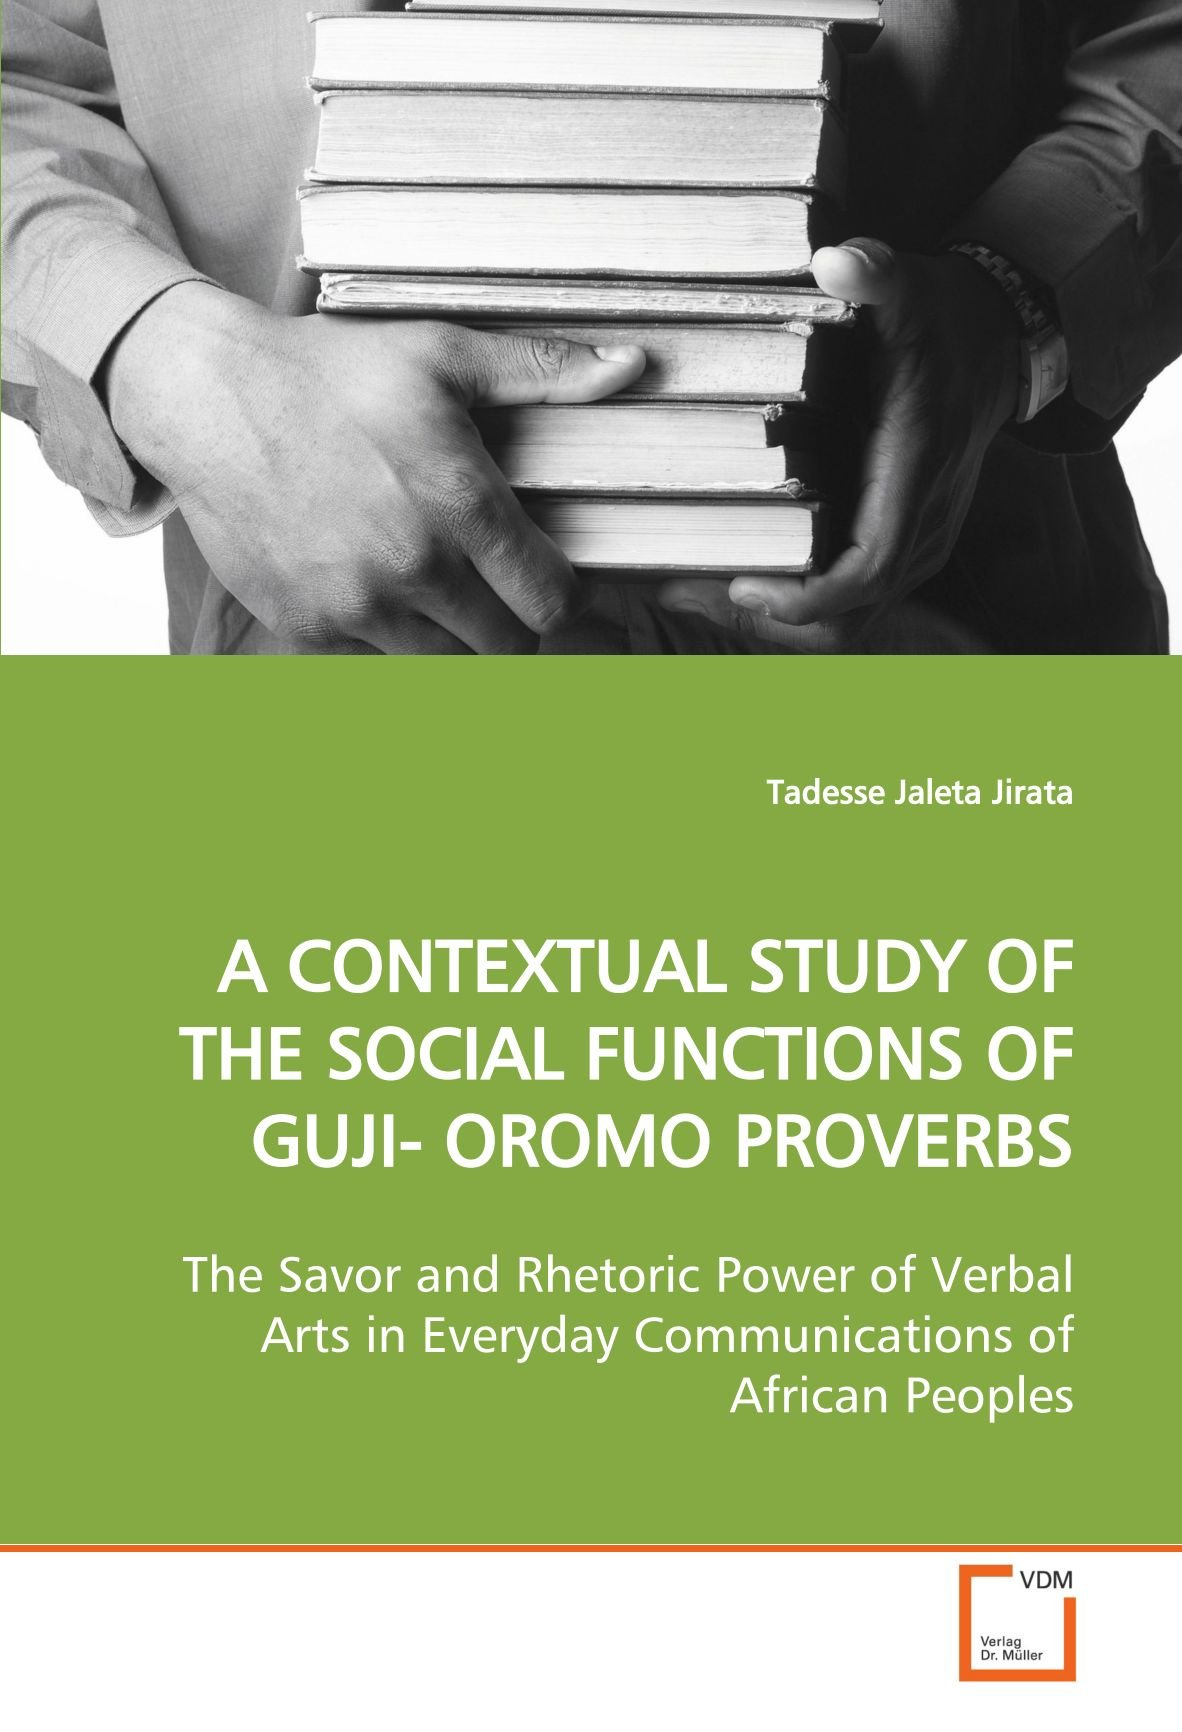 A CONTEXTUAL STUDY OF THE SOCIAL FUNCTIONS OF GUJI- OROMO PROVERBS: The Savor and Rhetoric Power of Verbal Arts in Everyday Communications of African Peoples ebook